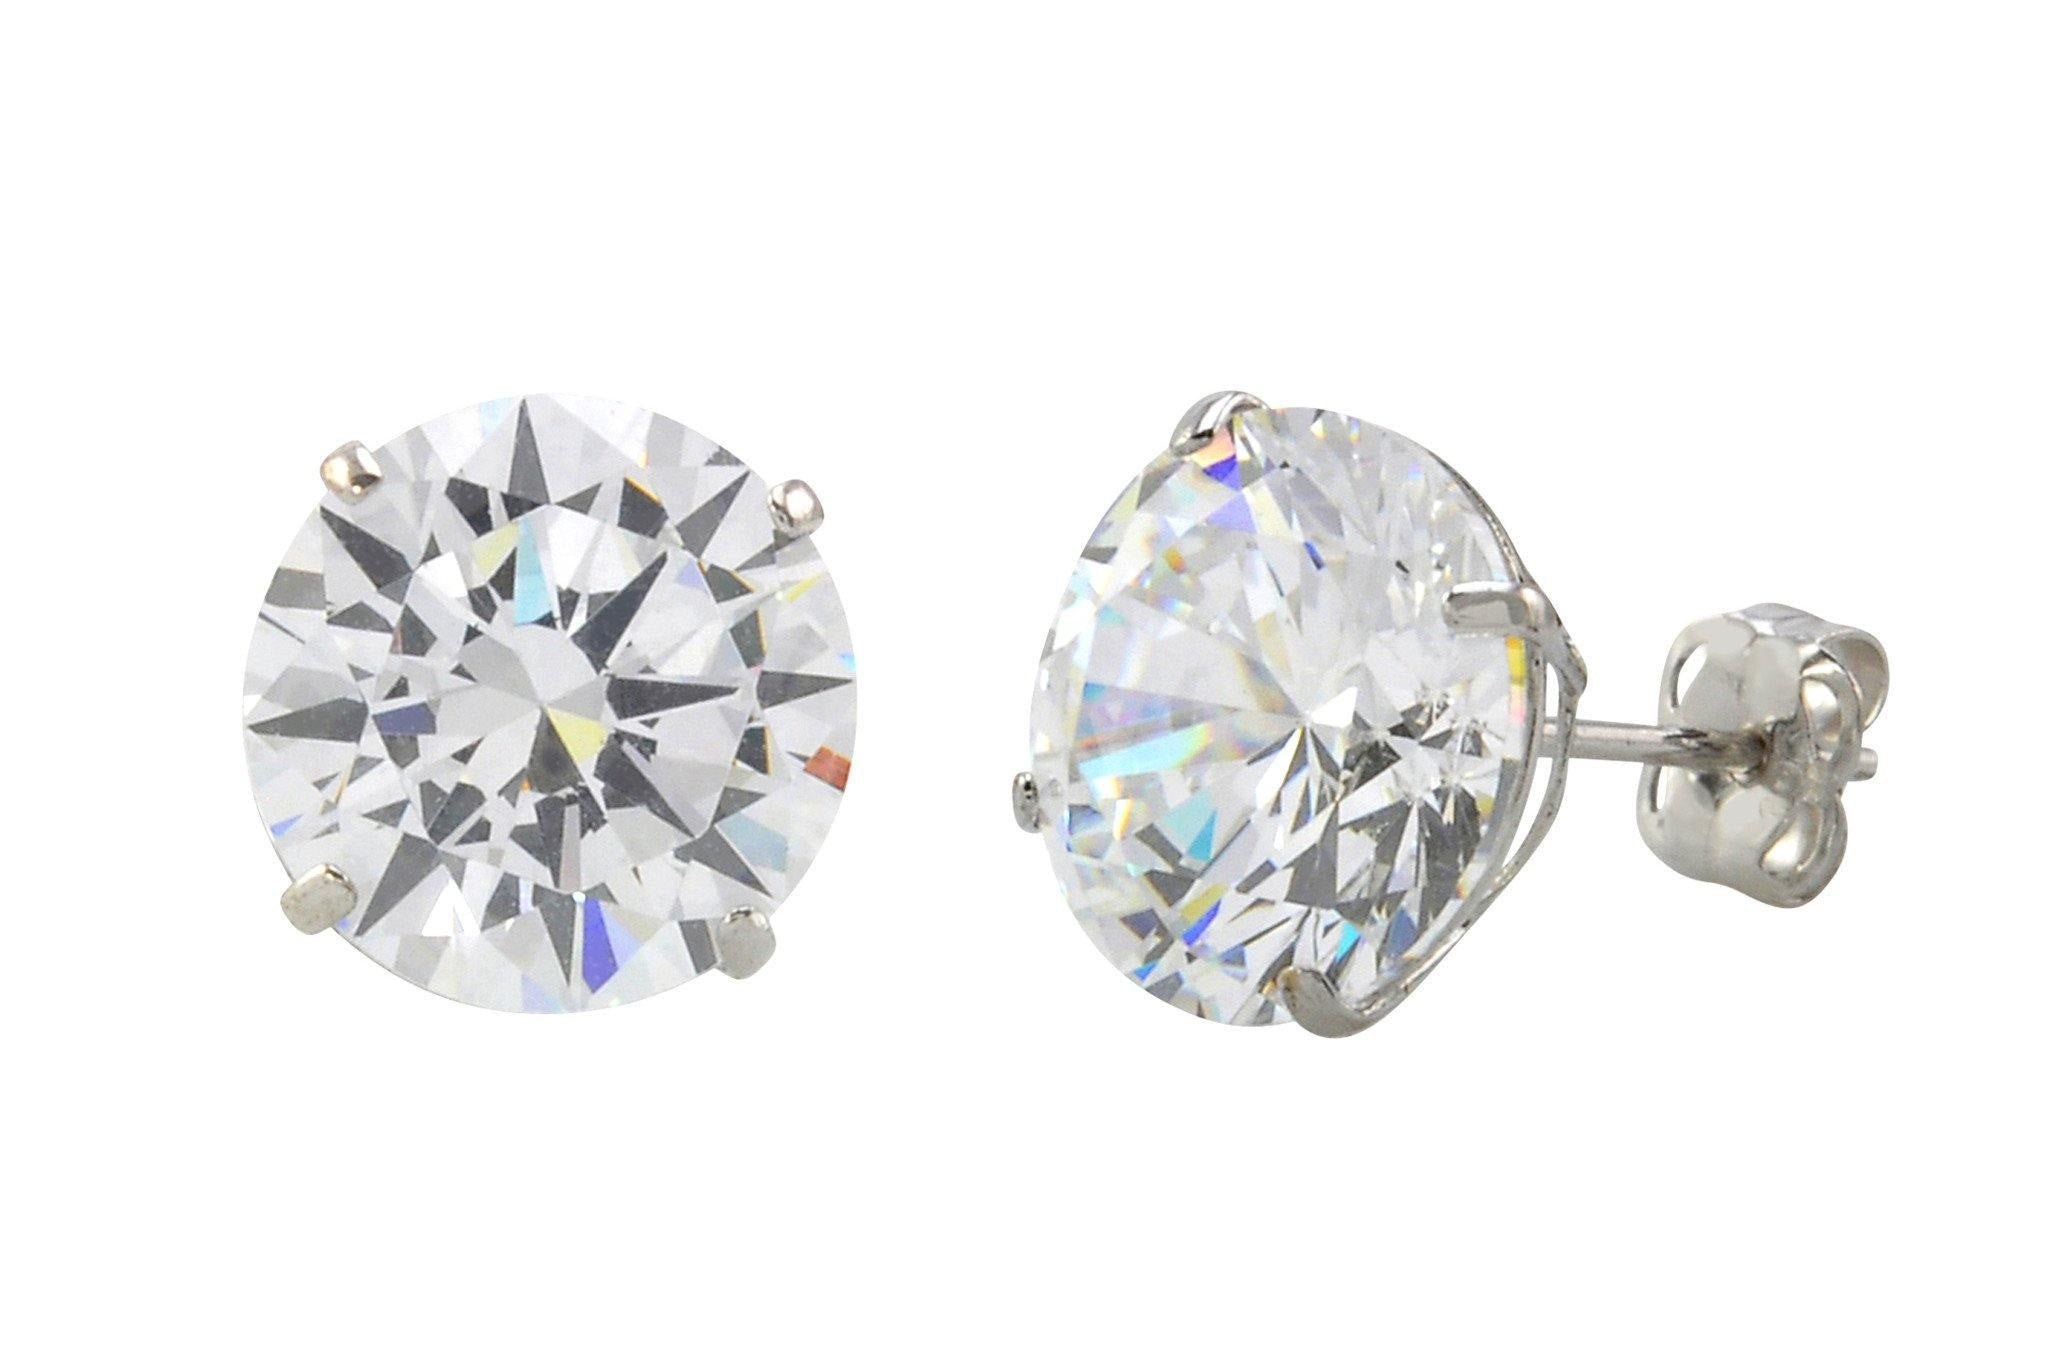 4fdbe733e 10k White Gold Round Clear Cubic Zirconia CZ Stud Earrings Basket Setting